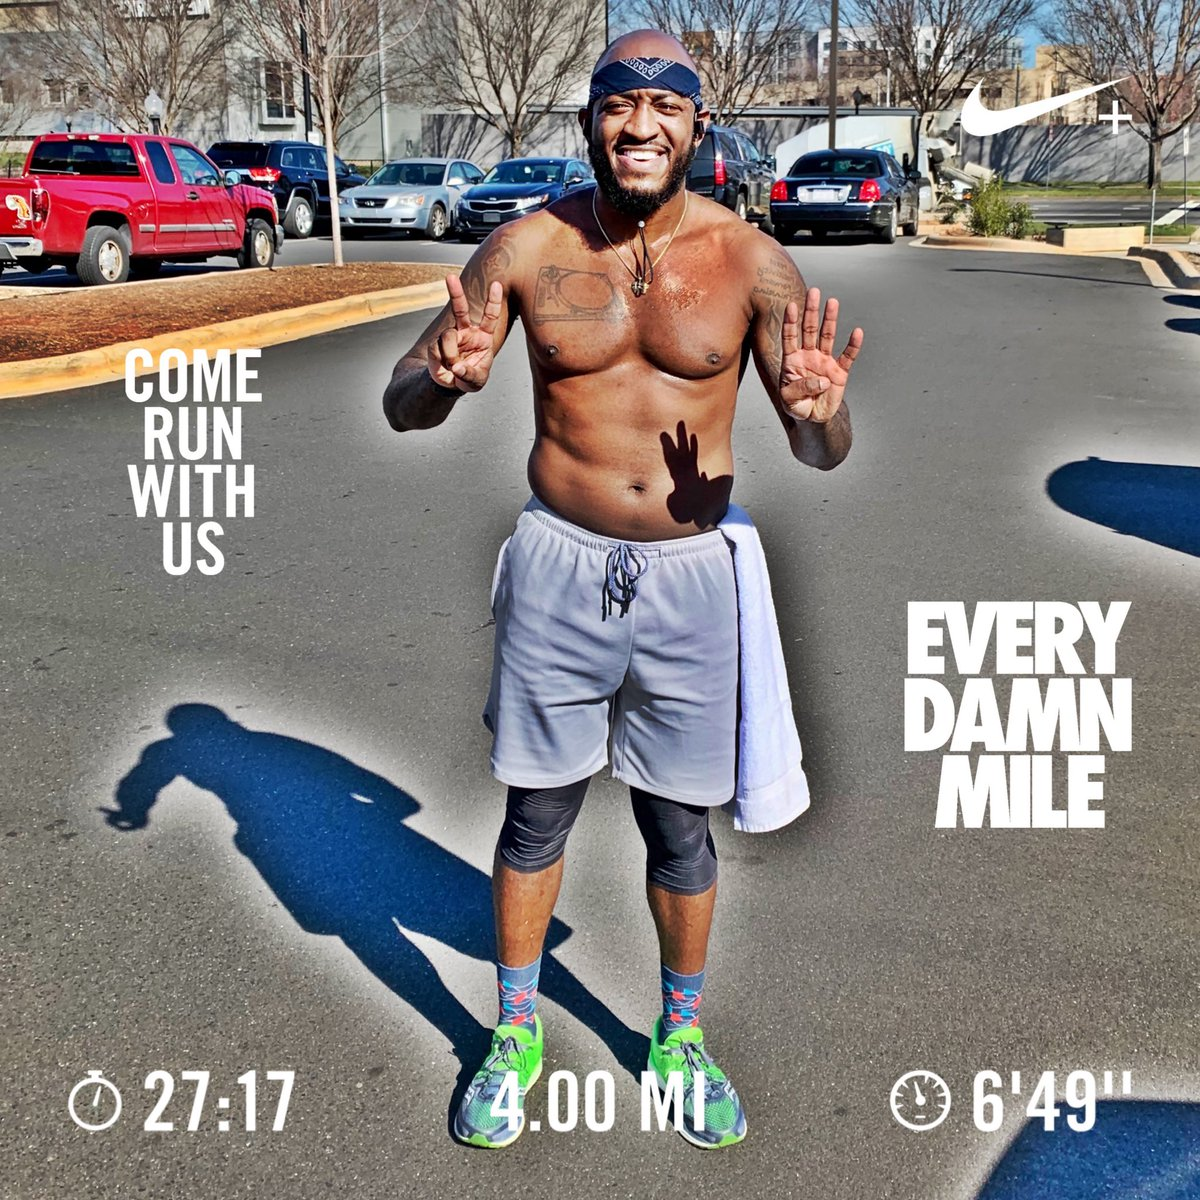 4.00 miles in 27.17 Mins 6.49 Pace #fitness #finishstrong #cardio #cardioday #nike #nikerunning #nikerunningclub #justdoit #gettingbettereveryday #nikerunning #FitDjs #4Miler #MambaMentality